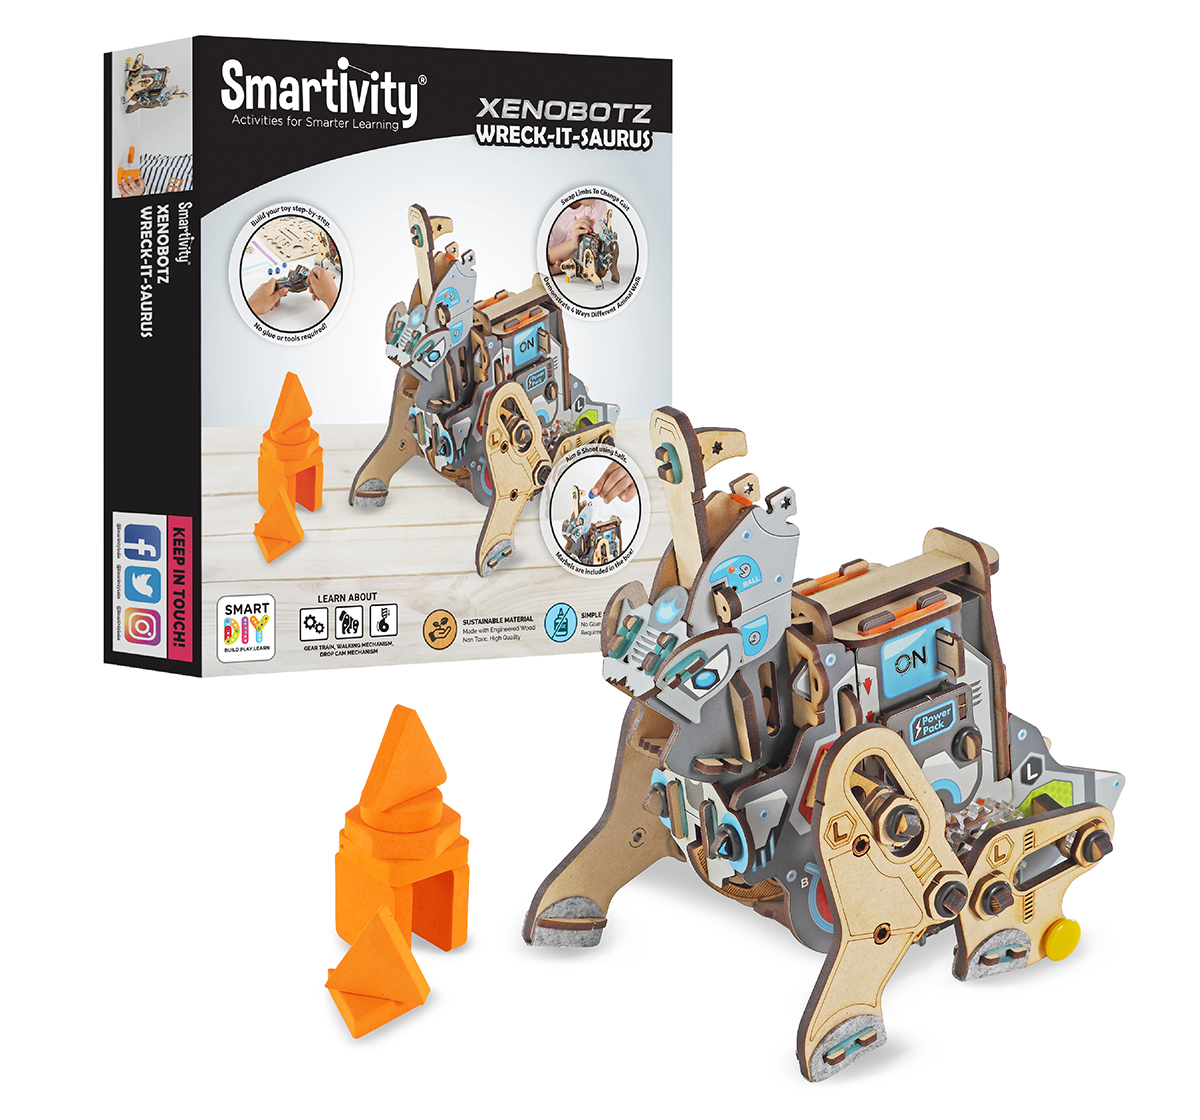 Smartivity | Smartivity Xenobots Wreck-It-Saurus, Stem, Learning, Educational And Construction Activity Toy Gift (Multi-Color), Unisex, 6Y+ (Multicolor)